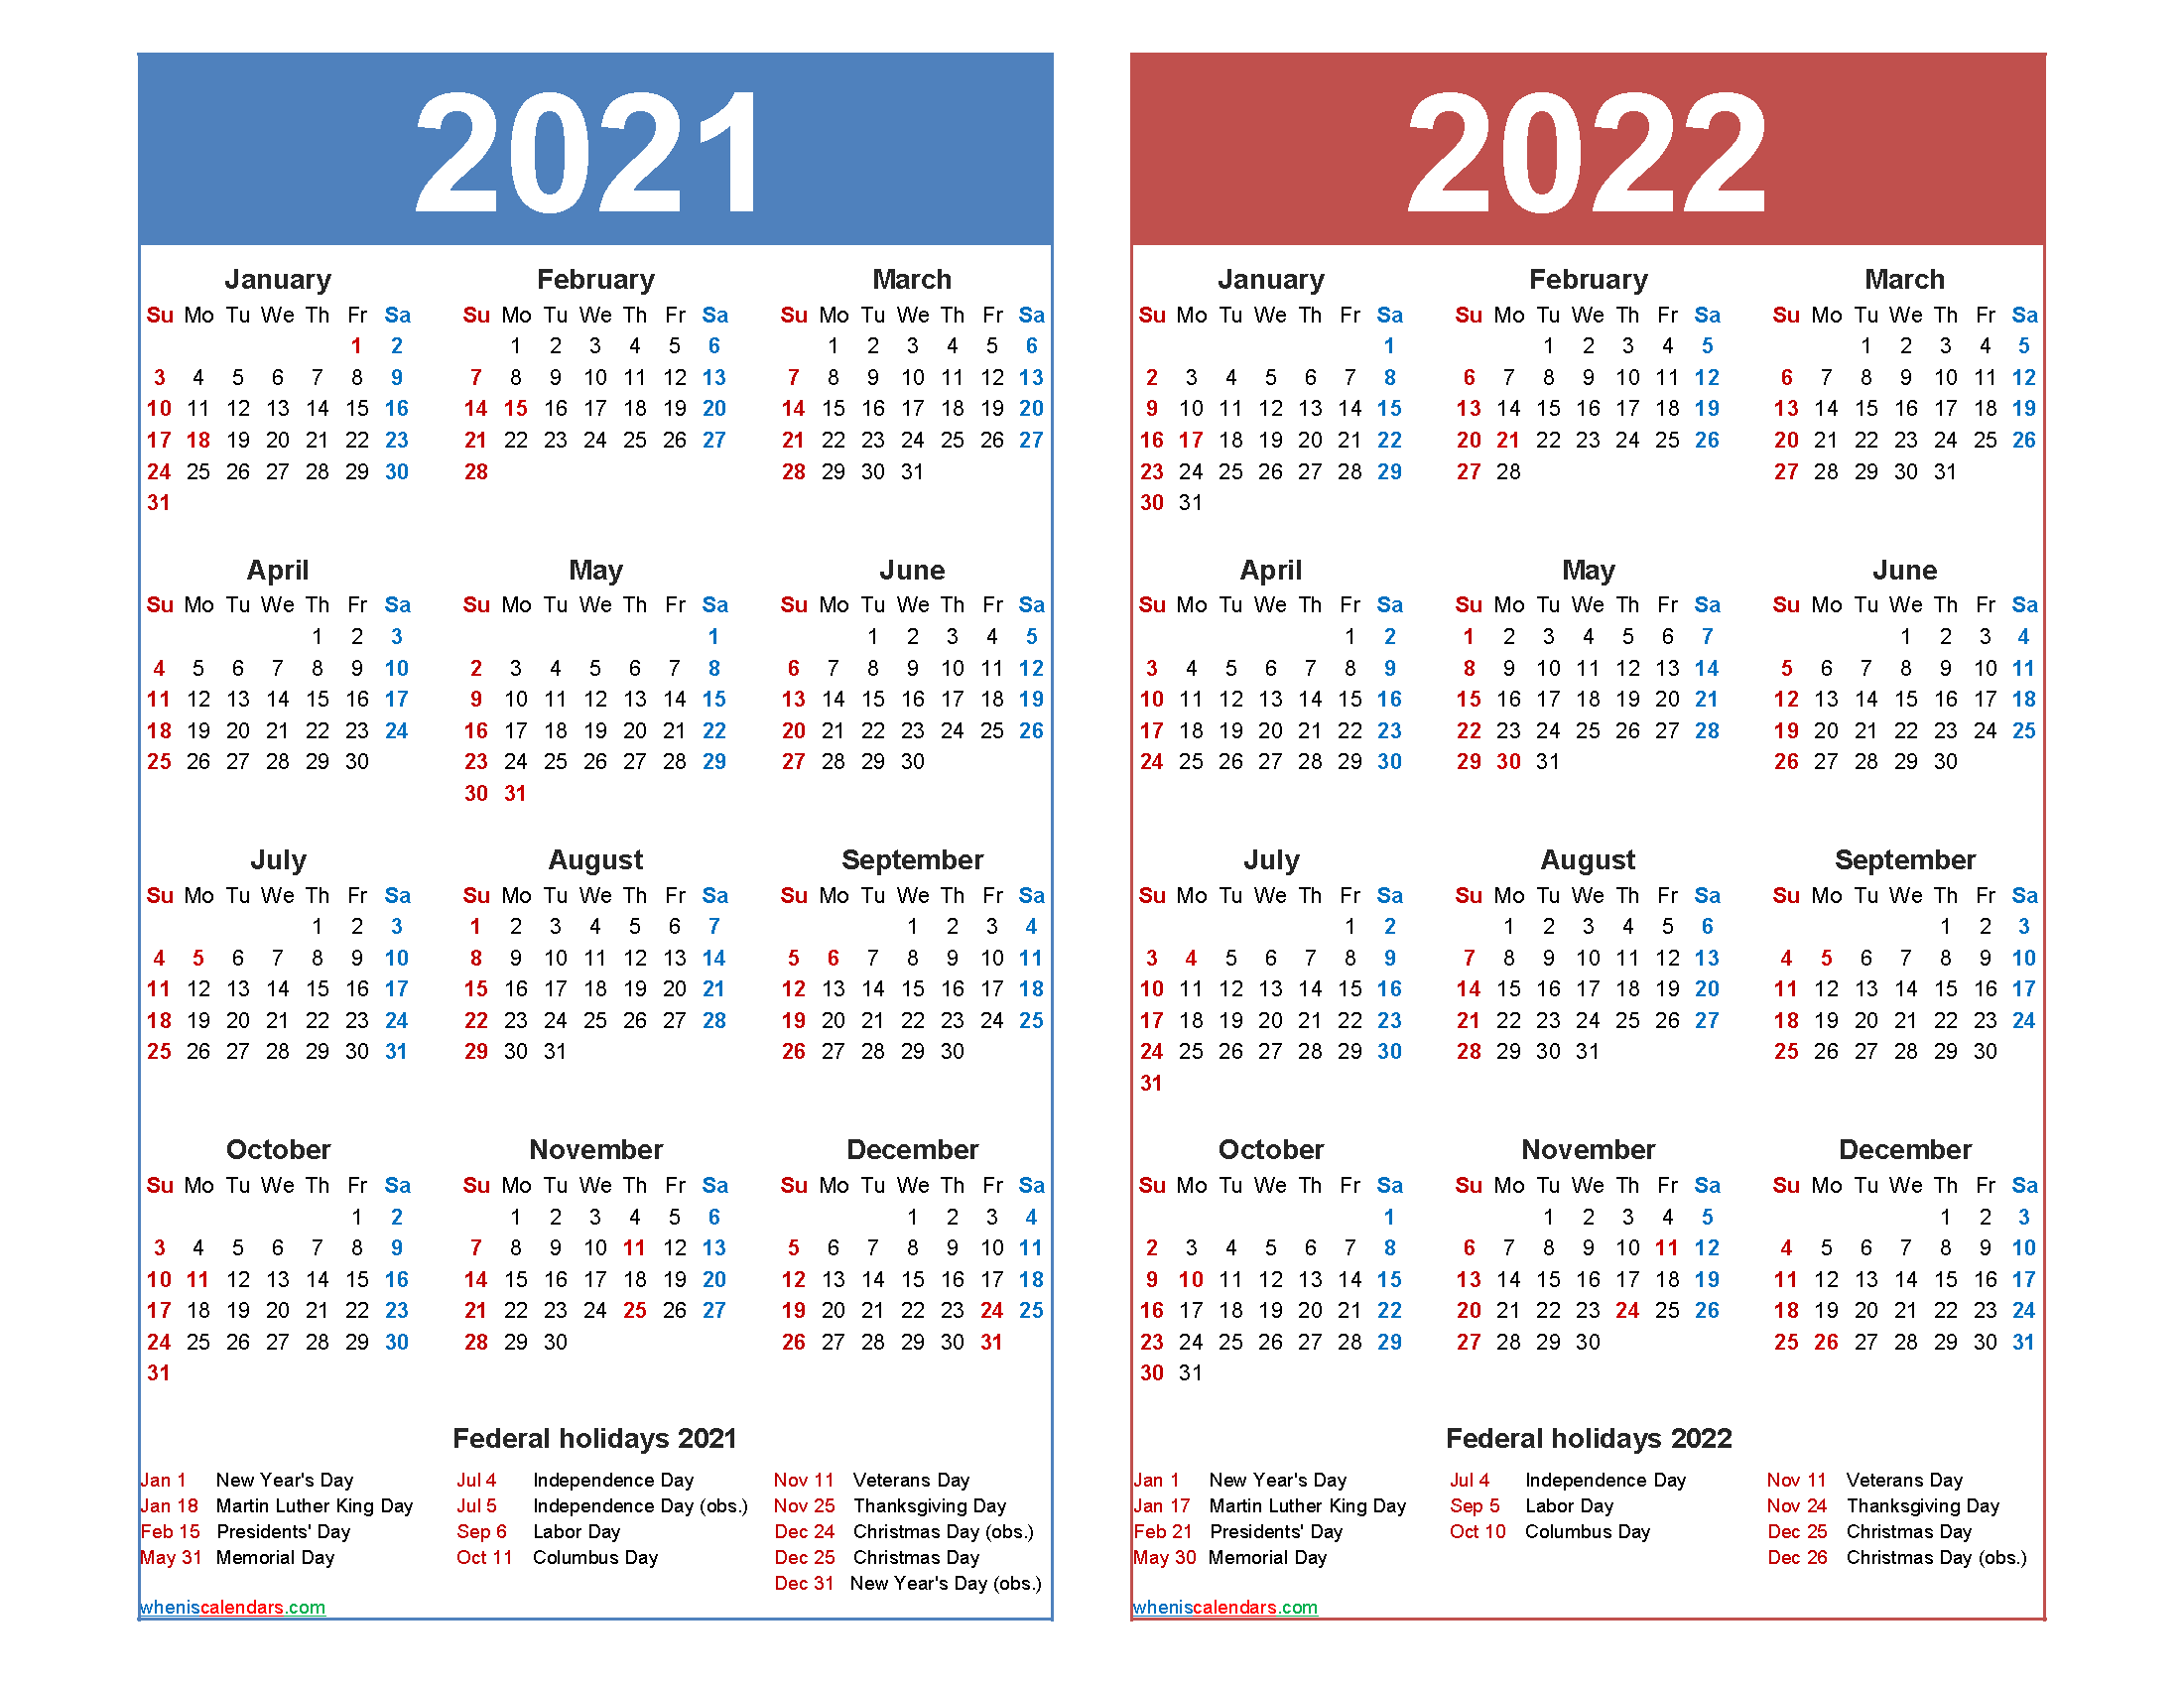 Calendar For 2021-2022 Free 2021 2022 Calendar Printable with Holidays – Free Printable